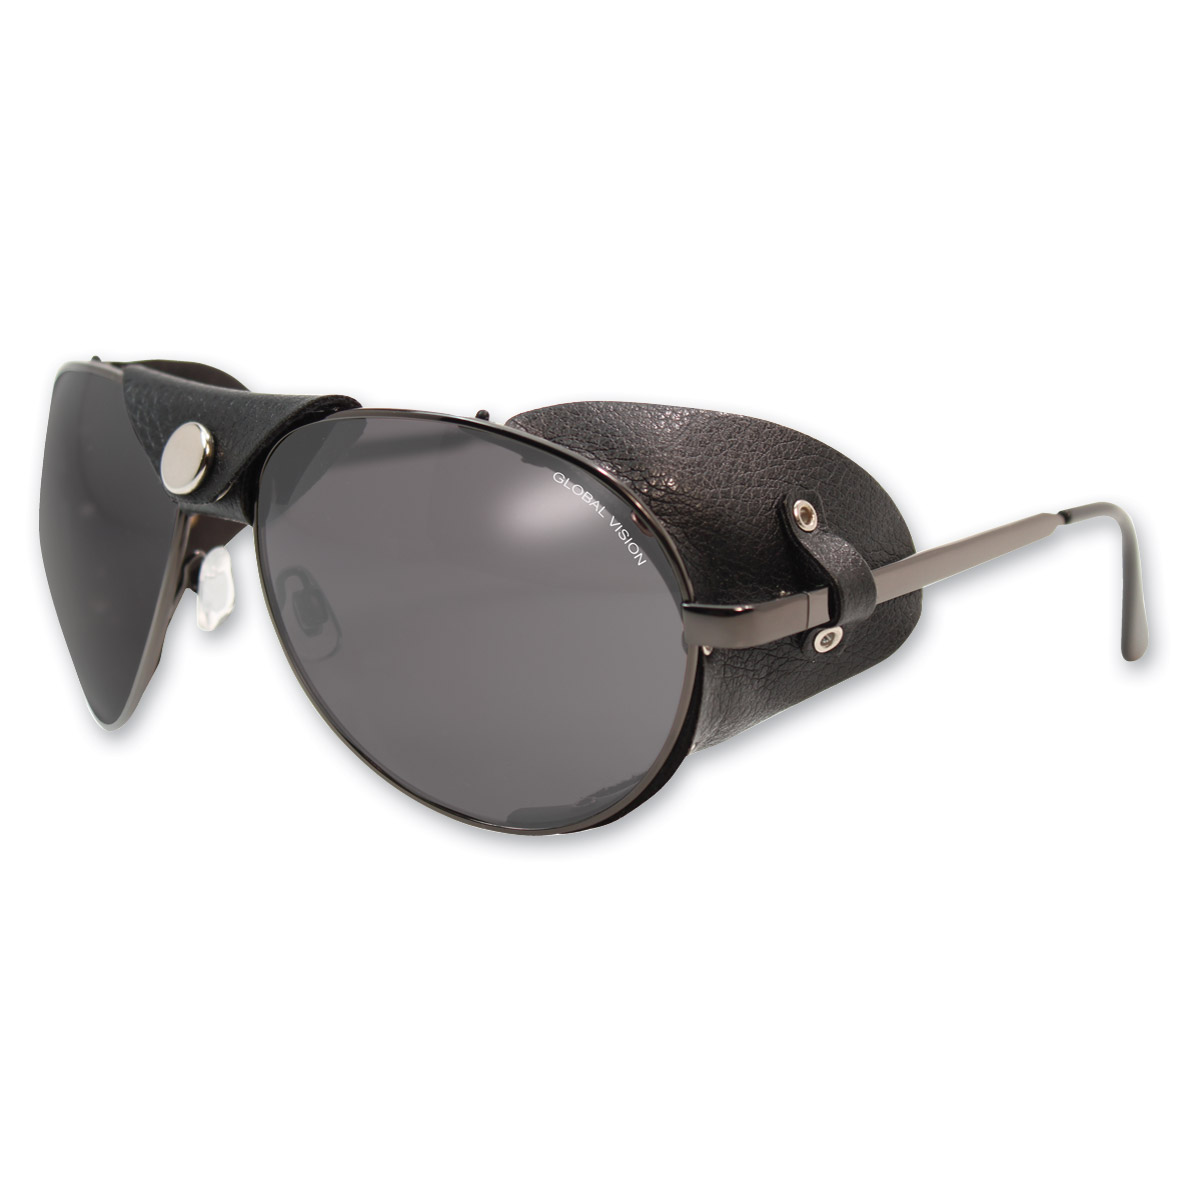 Global Vision Eyewear Shiny Gunmetal Smoke Lens